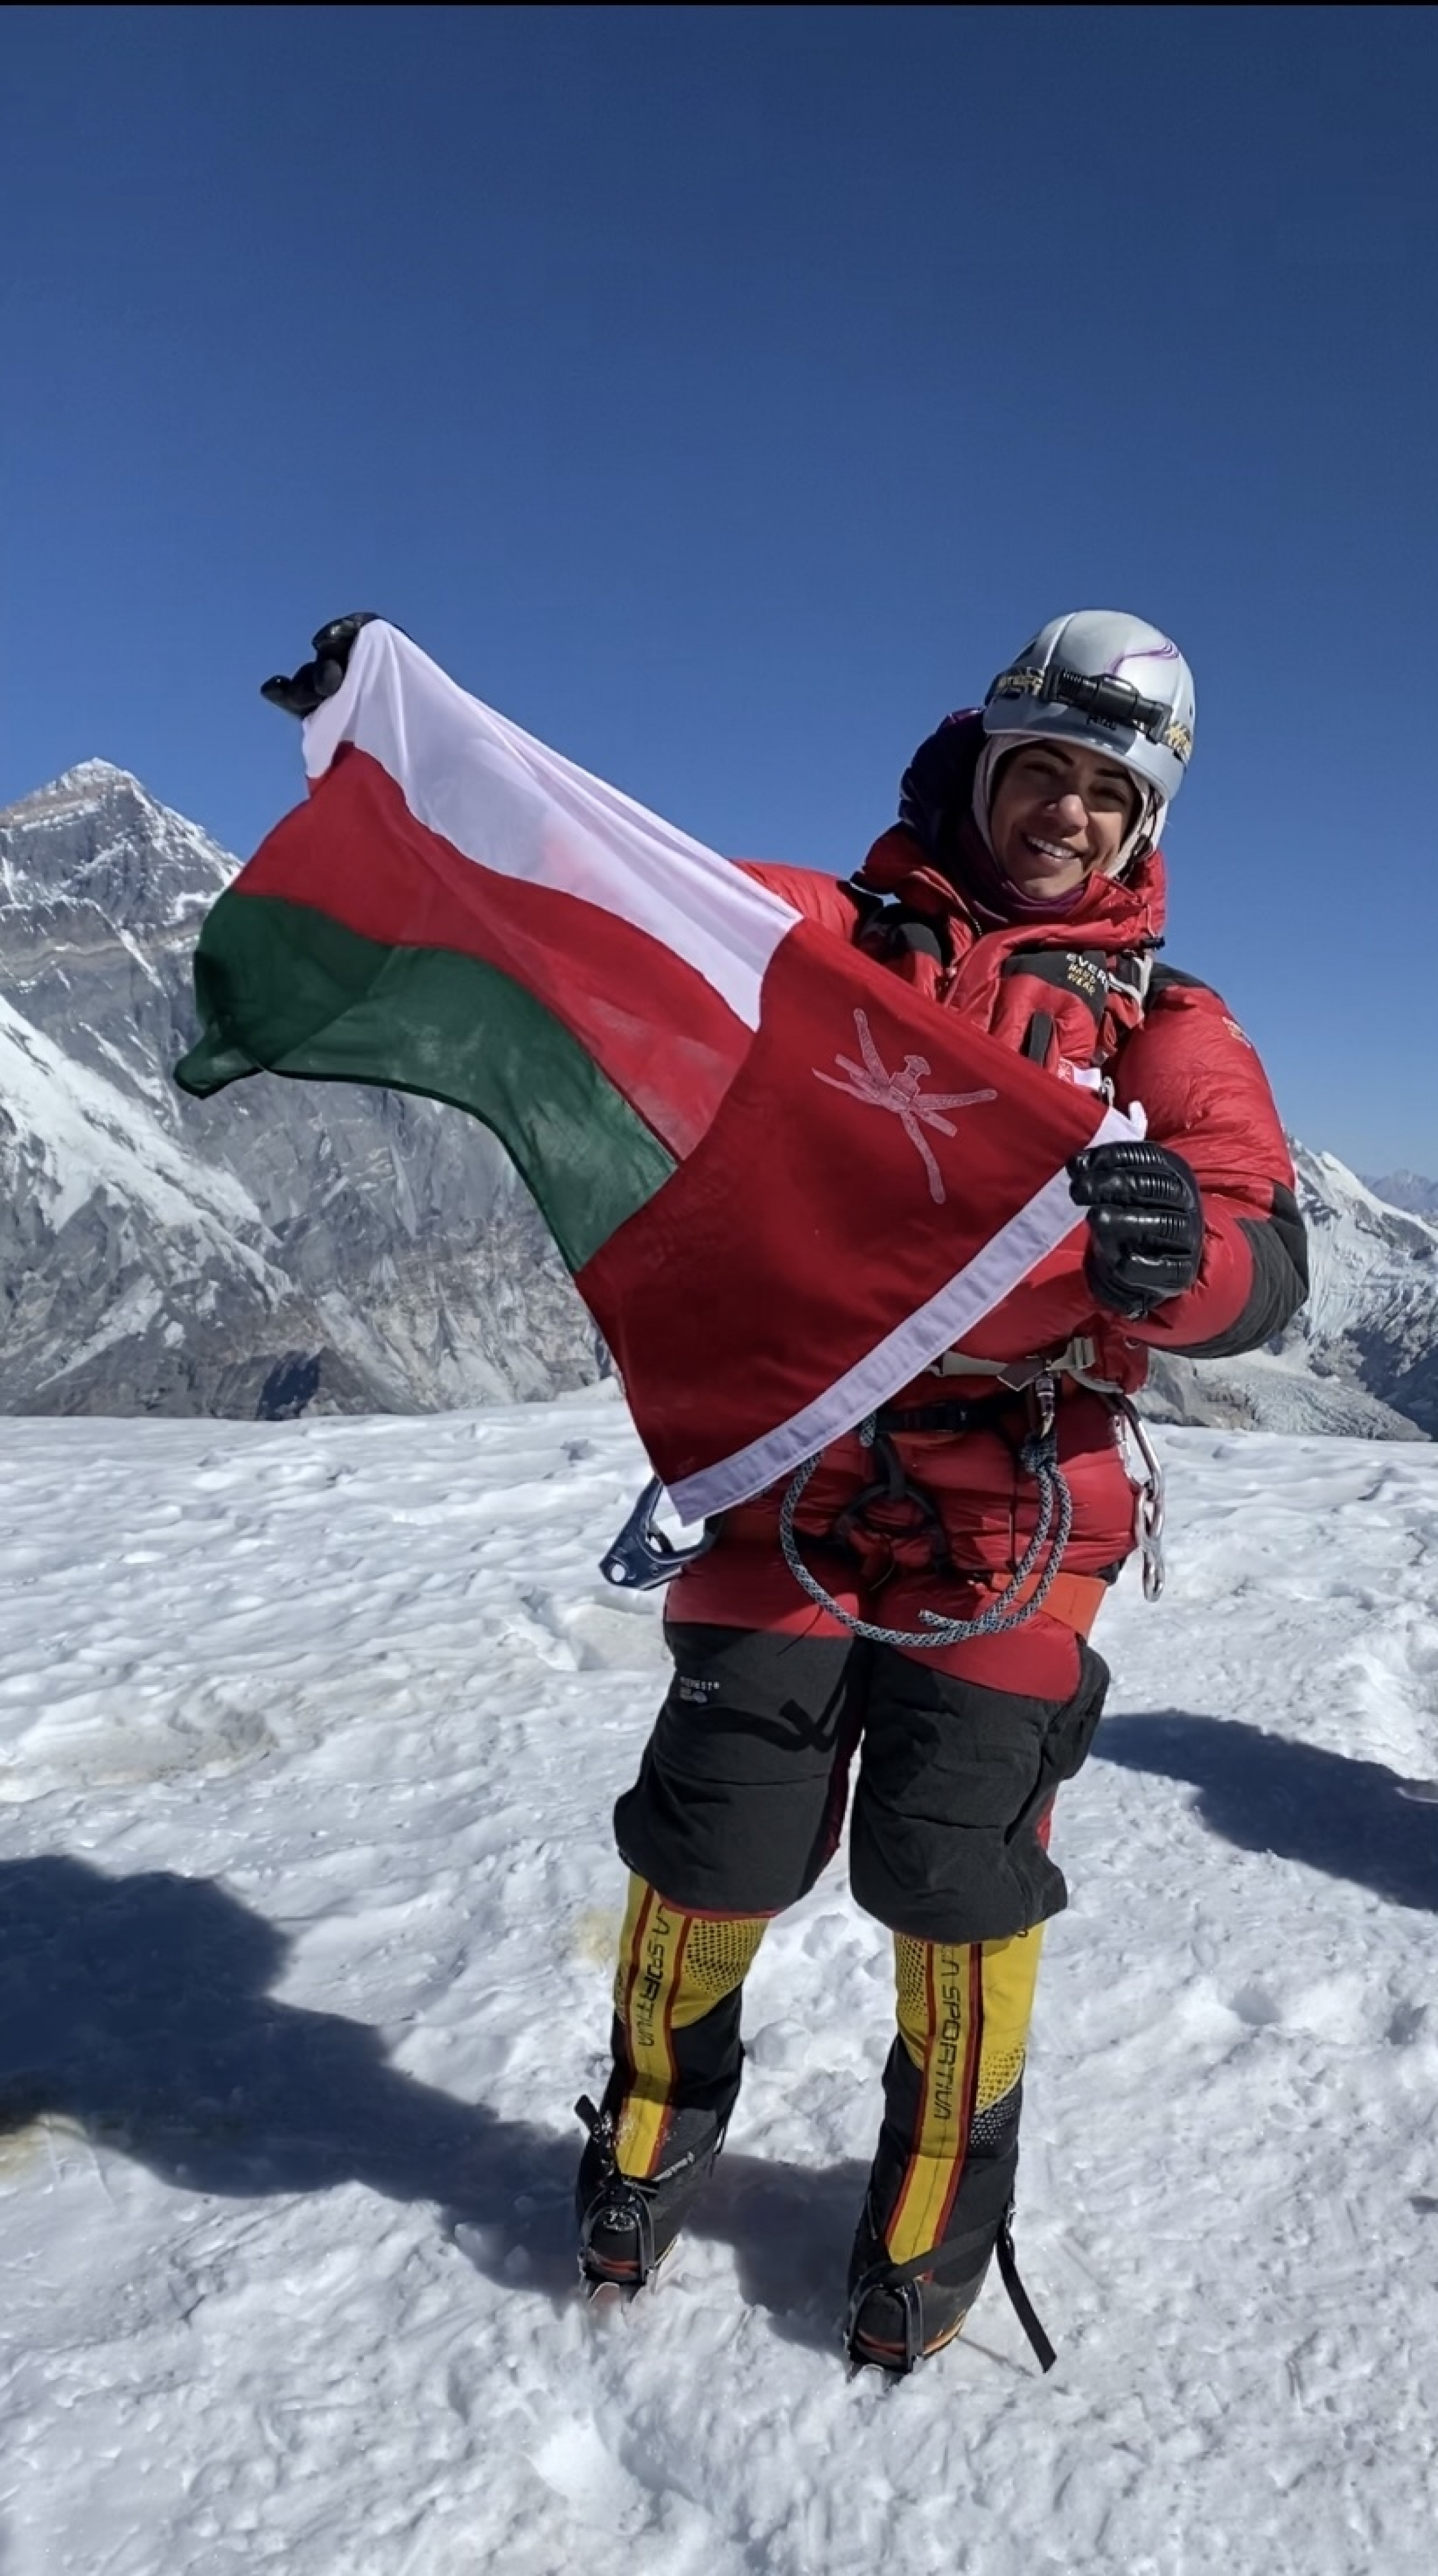 Omani climber Nadhira al-Harthy at the summit of Mt. Ama Dablam in Nepal on Jan. 14, 2021.